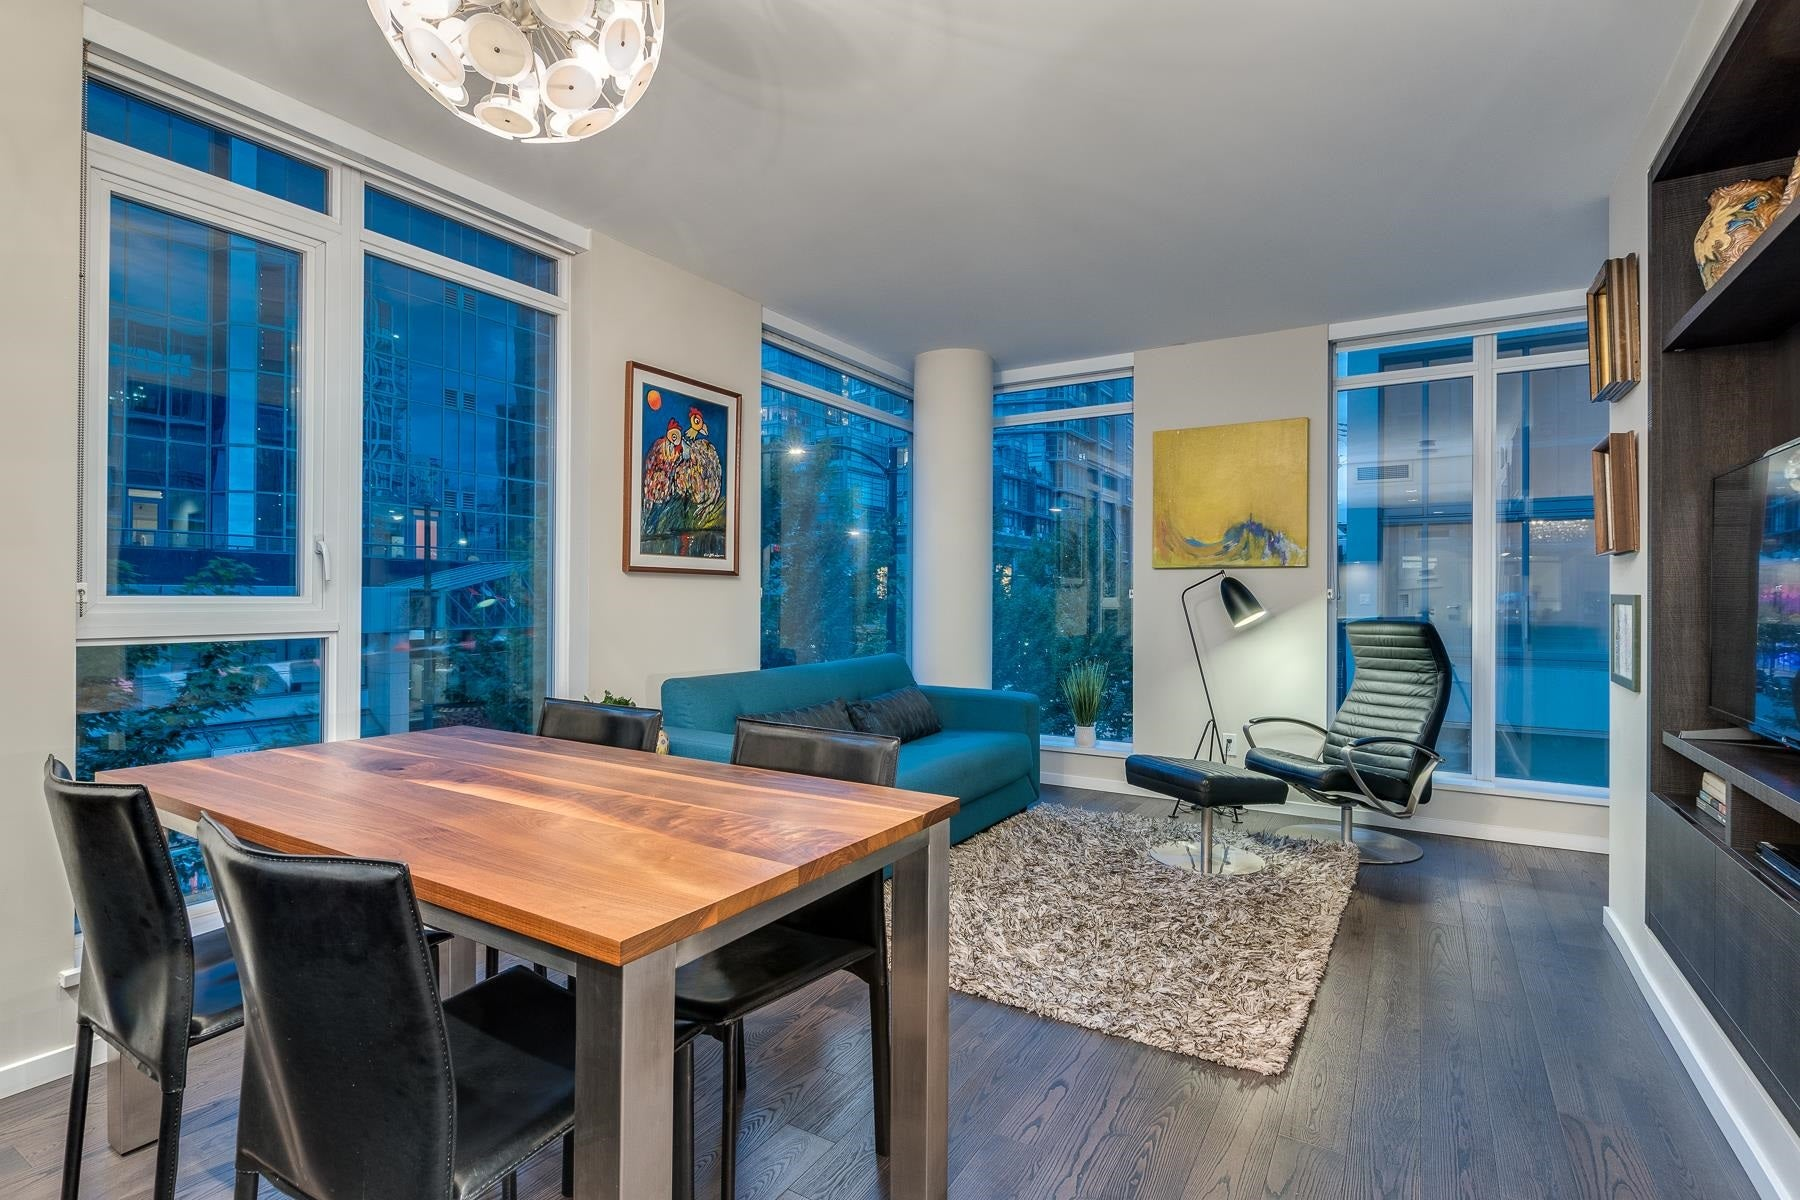 302 1351 CONTINENTAL STREET - Downtown VW Apartment/Condo for sale, 1 Bedroom (R2623344) - #1